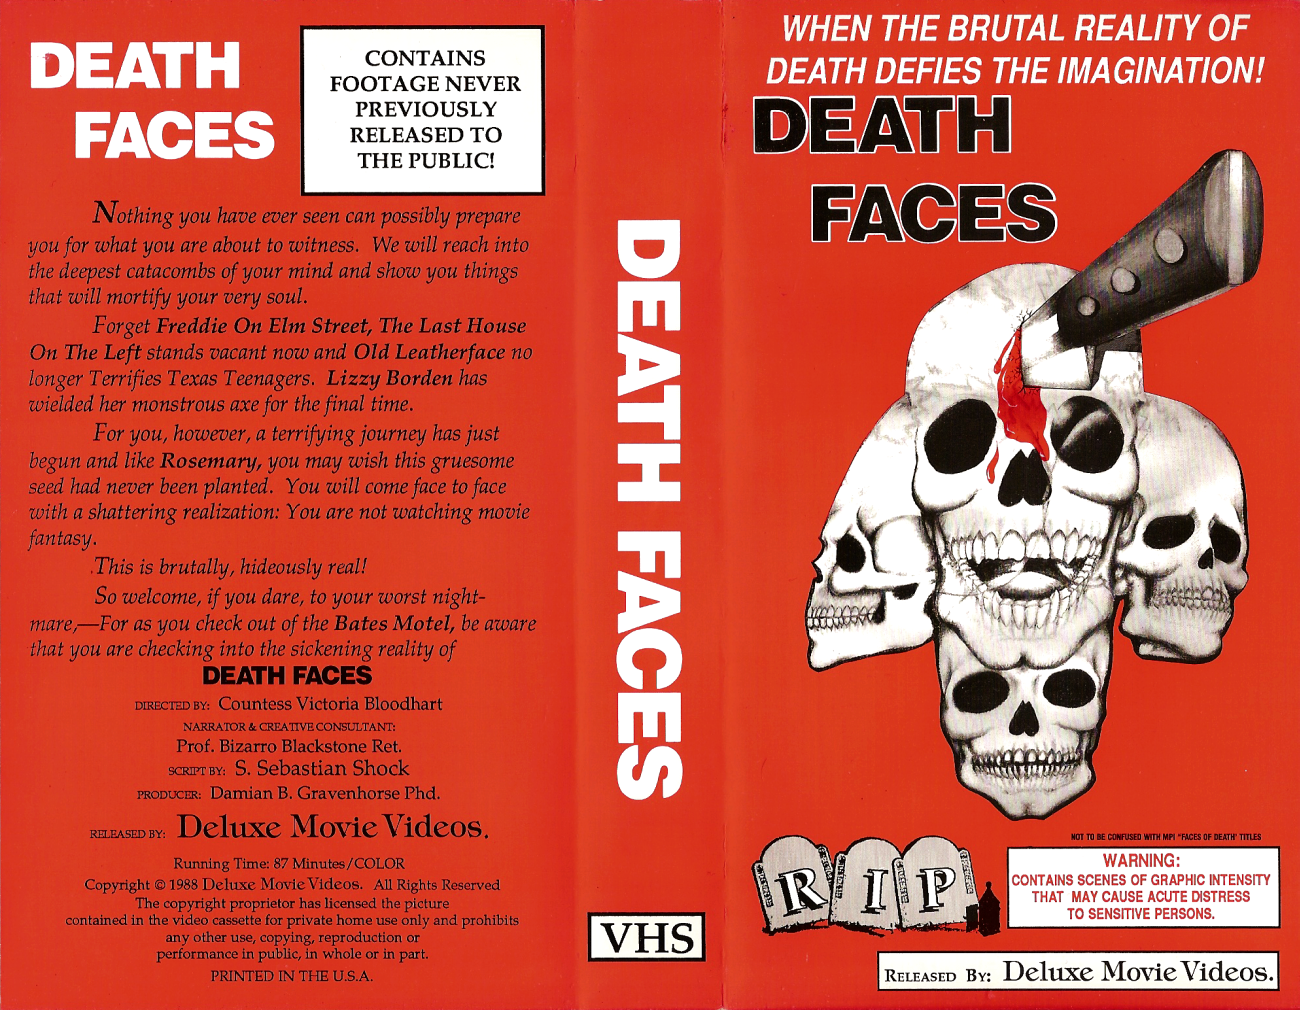 Faces of Death - Wikipedia